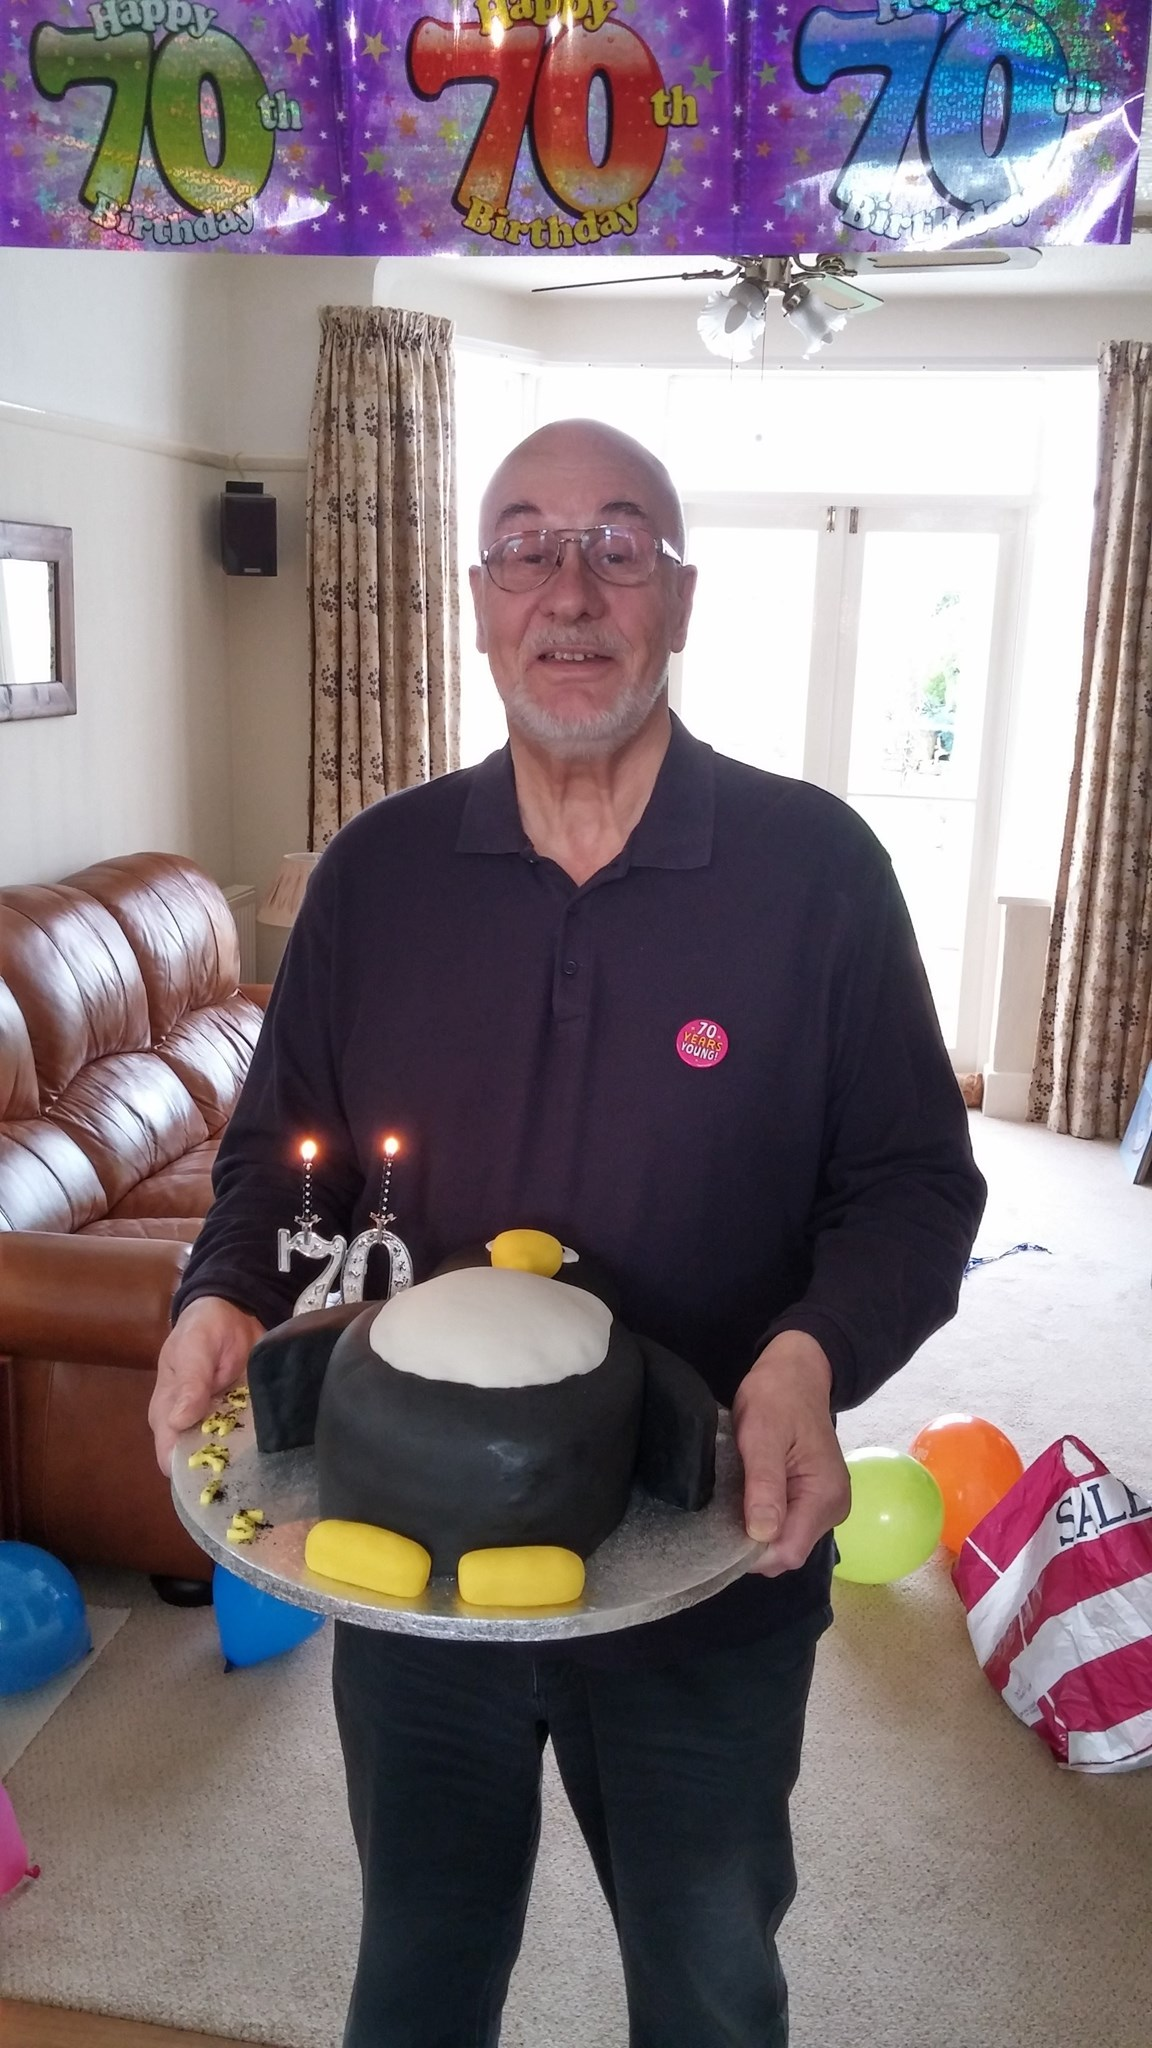 Surprise 70th party - he loved penguins :)